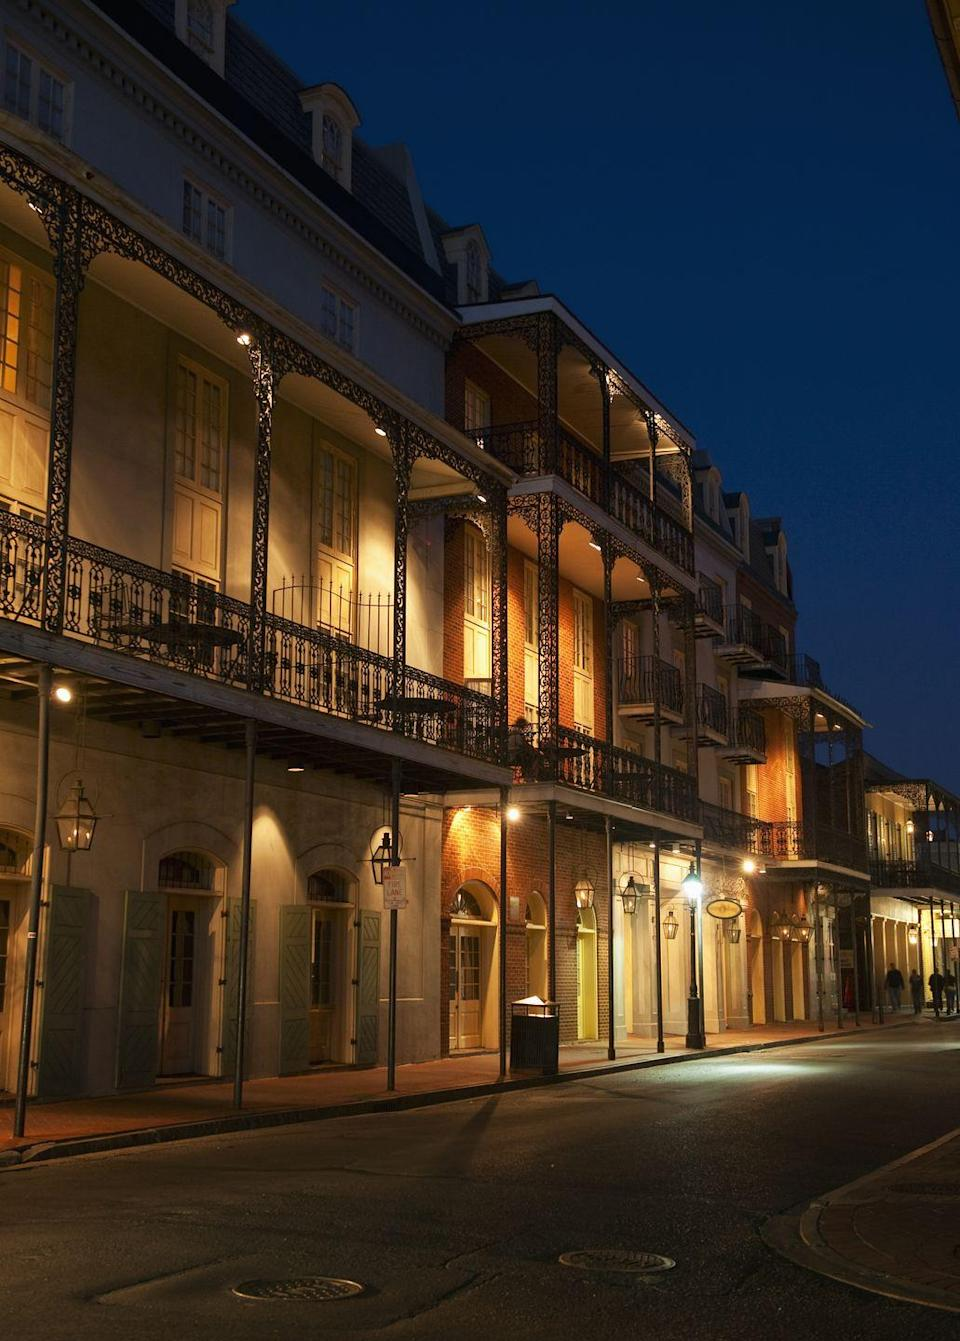 """<p>New Orleans has a history filled with voodoo, vampires, ghosts, and witches, and on this 90-minute tour through the city's historic French Quarter, you'll learn all about the freaky folklore surrounding life in the Big Easy. </p><p><a class=""""link rapid-noclick-resp"""" href=""""https://go.redirectingat.com?id=74968X1596630&url=https%3A%2F%2Fwww.tripadvisor.com%2FAttractionProductReview-g60864-d11453064-New_Orleans_1_Haunted_Ghost_Voodoo_Vampire_Tour-New_Orleans_Louisiana.html&sref=https%3A%2F%2Fwww.redbookmag.com%2Flife%2Fg37623207%2Fghost-tours-near-me%2F"""" rel=""""nofollow noopener"""" target=""""_blank"""" data-ylk=""""slk:LEARN MORE"""">LEARN MORE</a></p>"""